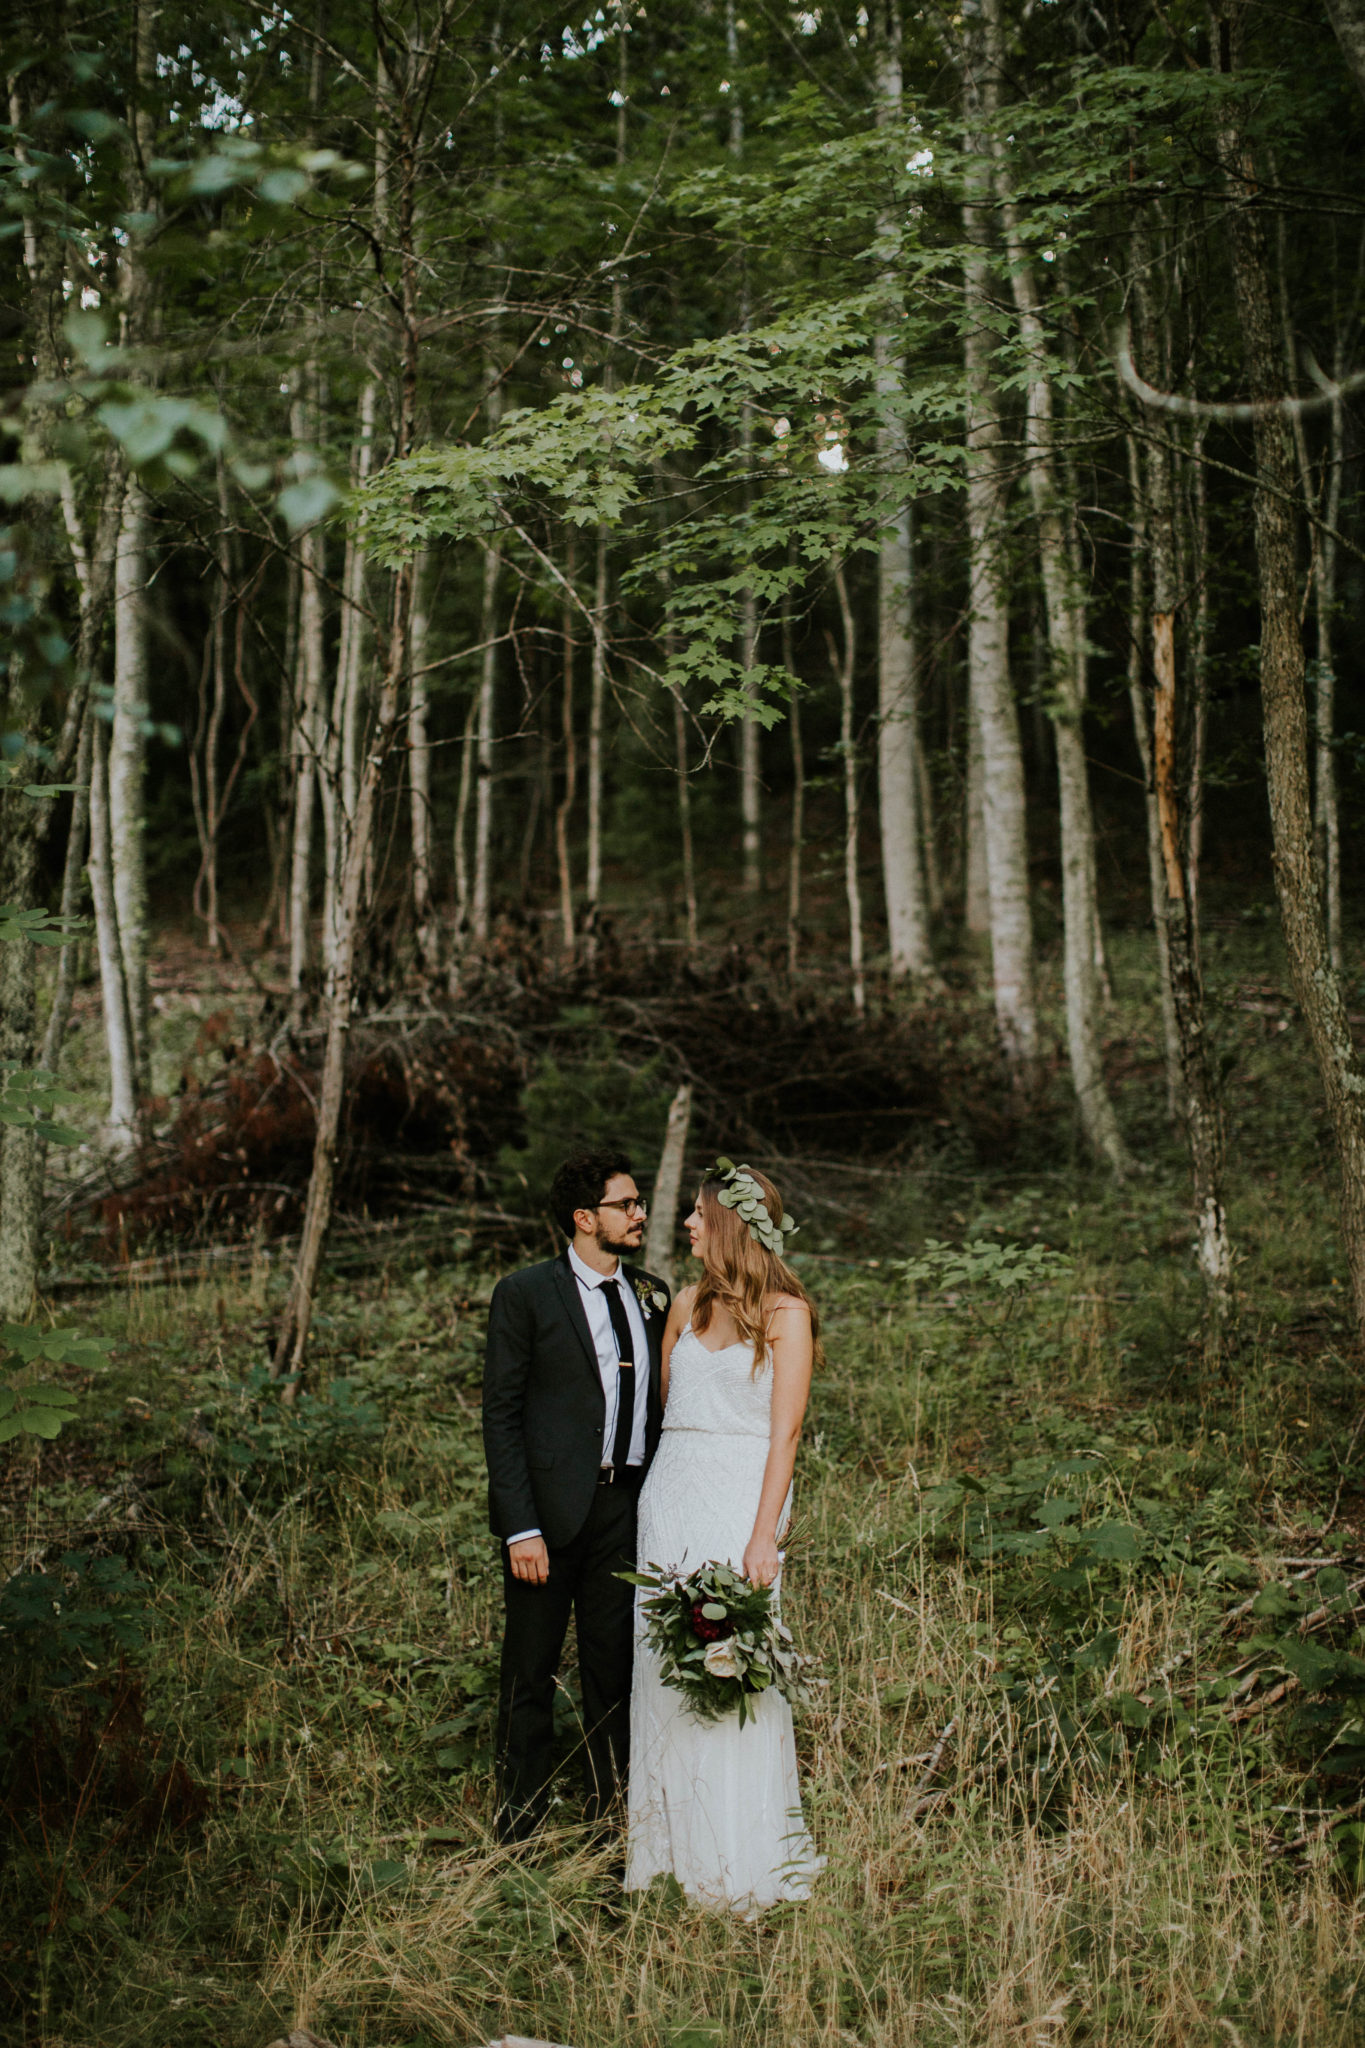 Anna & Jesus North Carolina Mountain Wedding Photographer-782